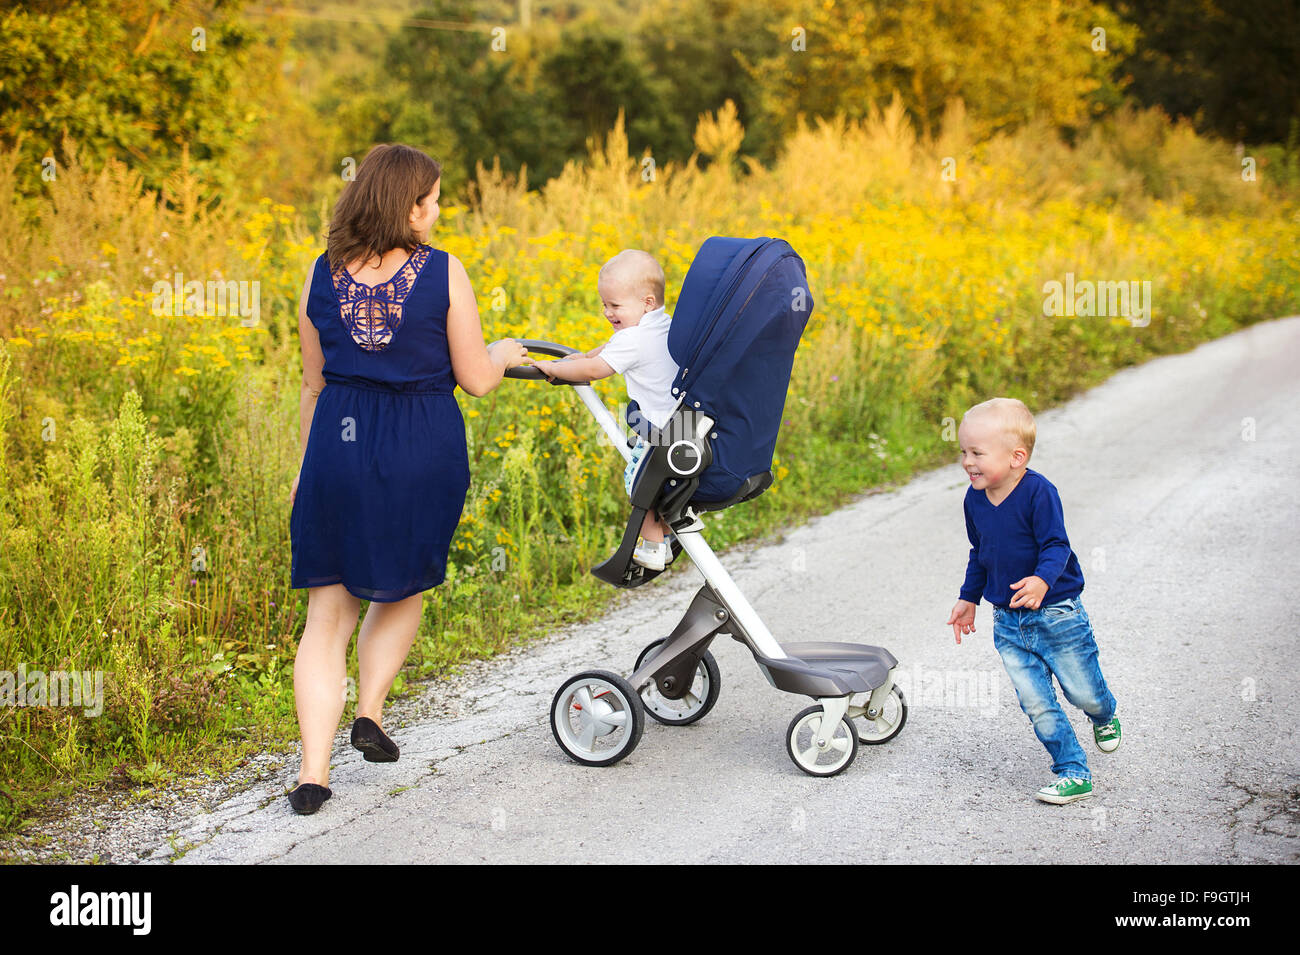 Mother and sons on a walk in nature enjoying life together. - Stock Image